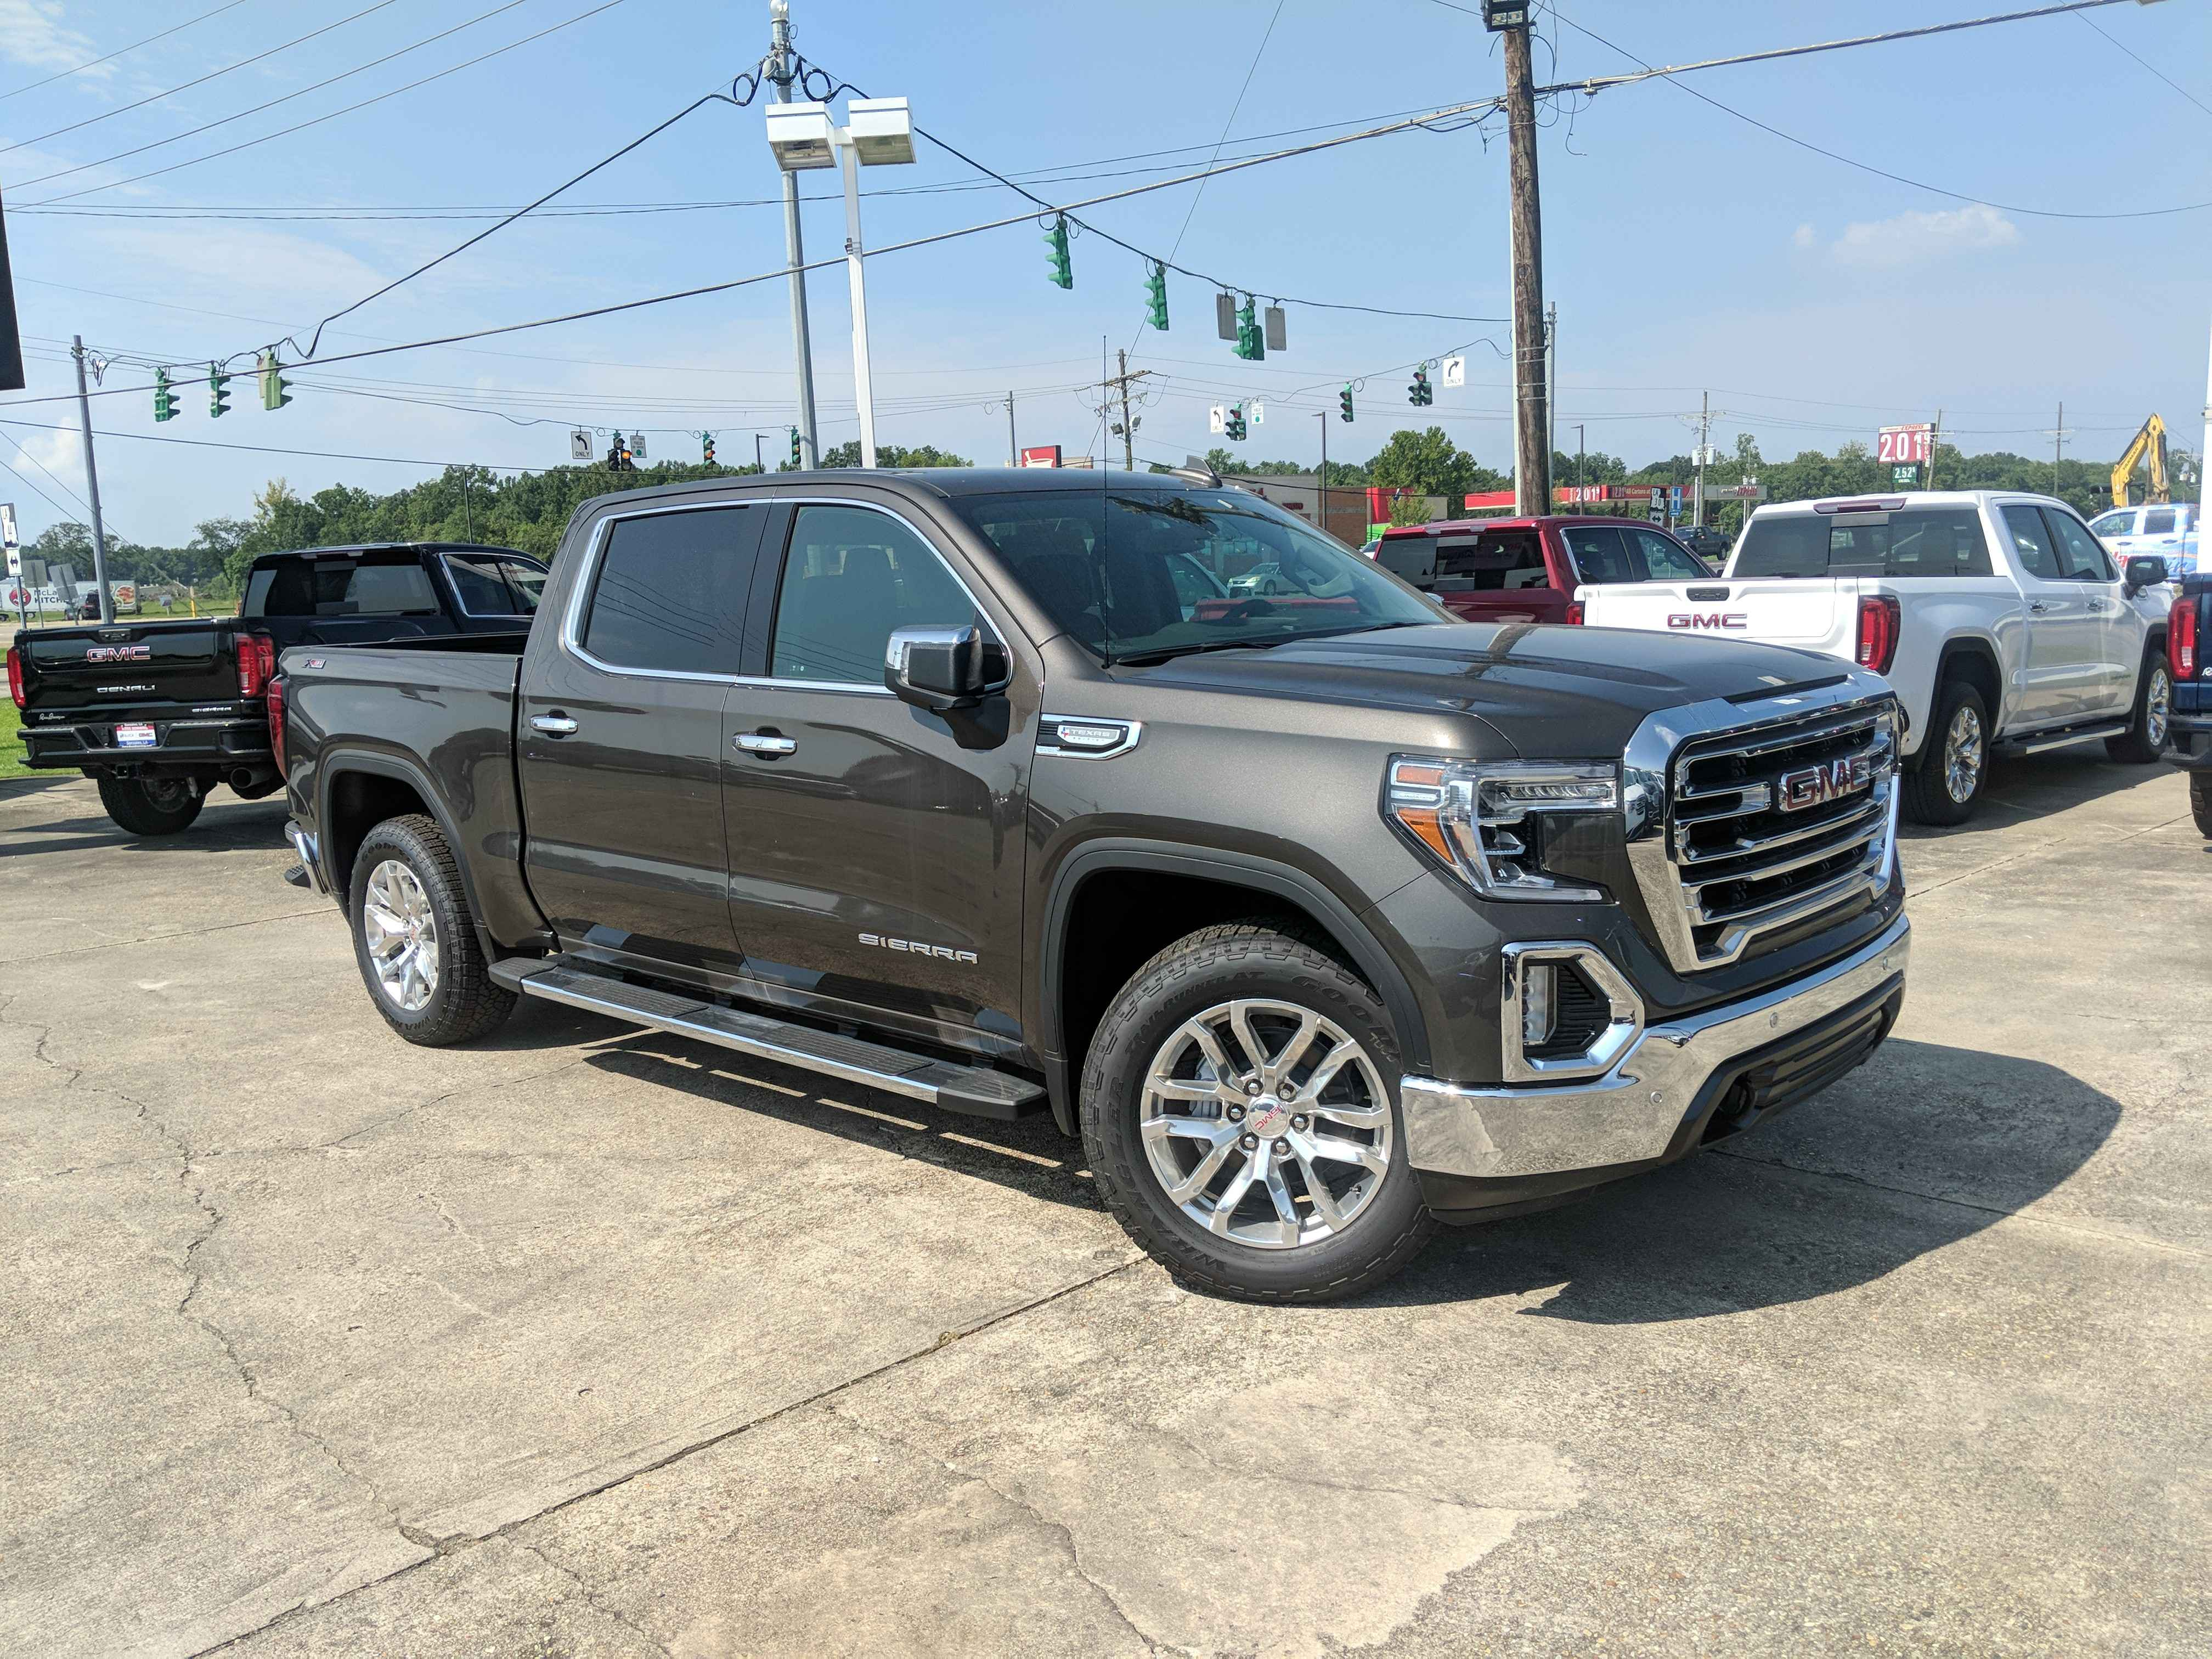 Gonzales - New Gmc Vehicles for Sale